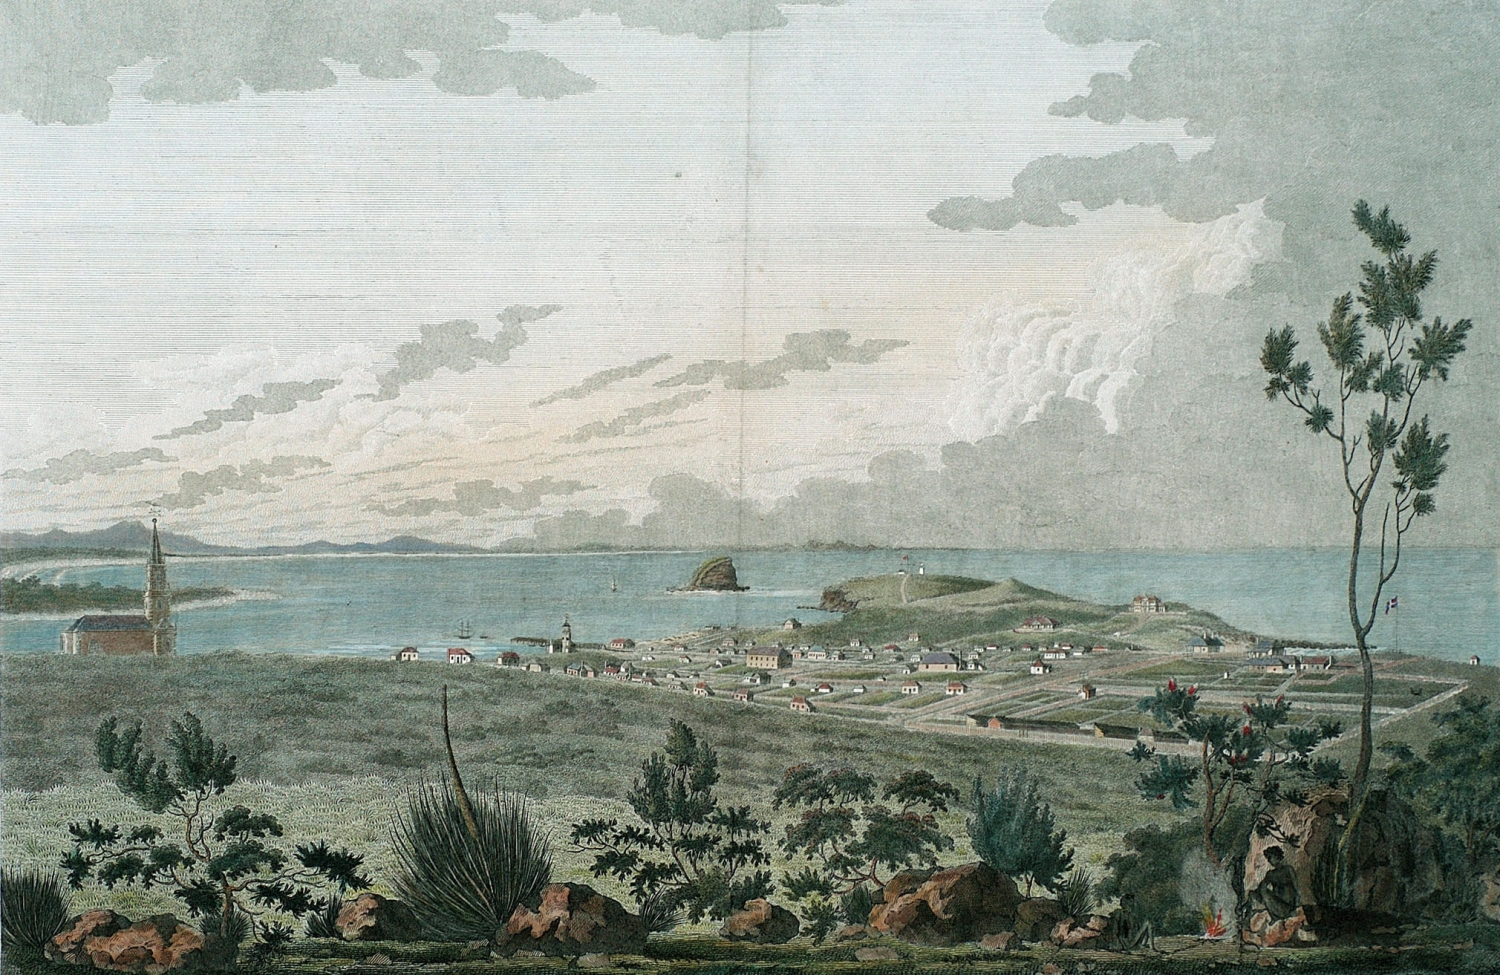 Lithographic image of a view from a lookout over coastal town with church, village and a river mouth opening to ocean with a large stony bluff at the end of a peninsula